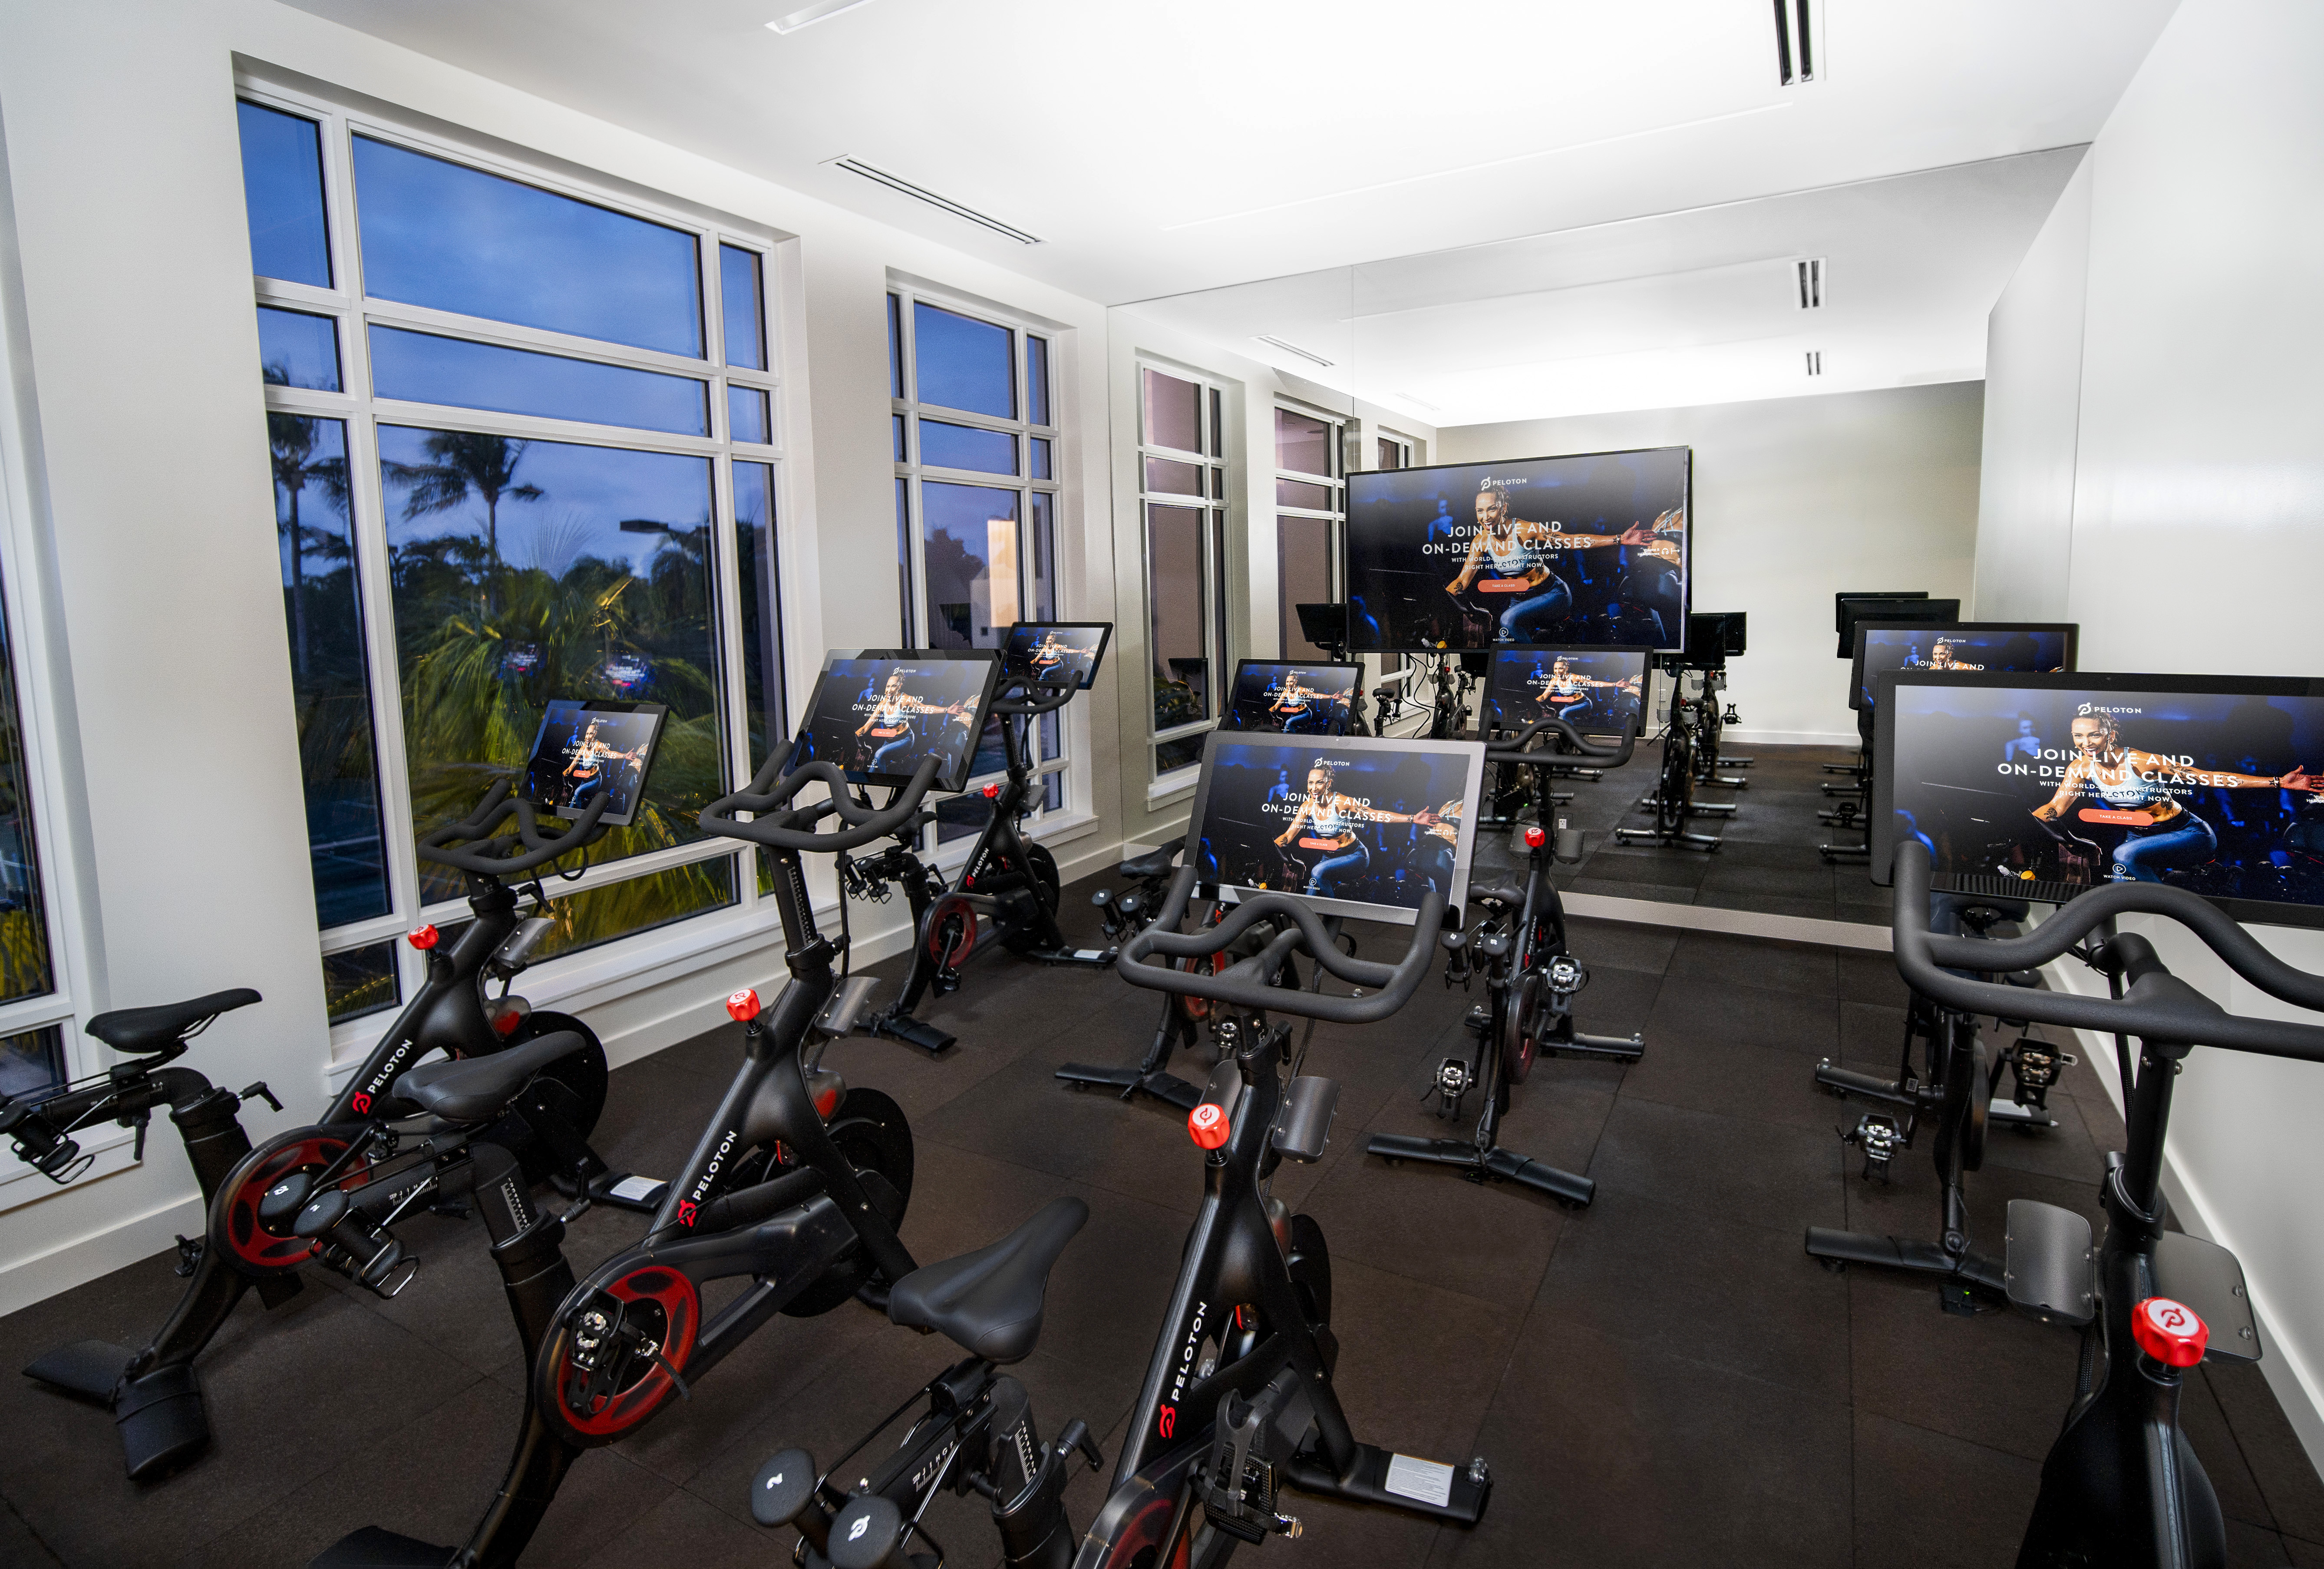 Peloton Bike Spinning Studio at Addison Reserve in Florida